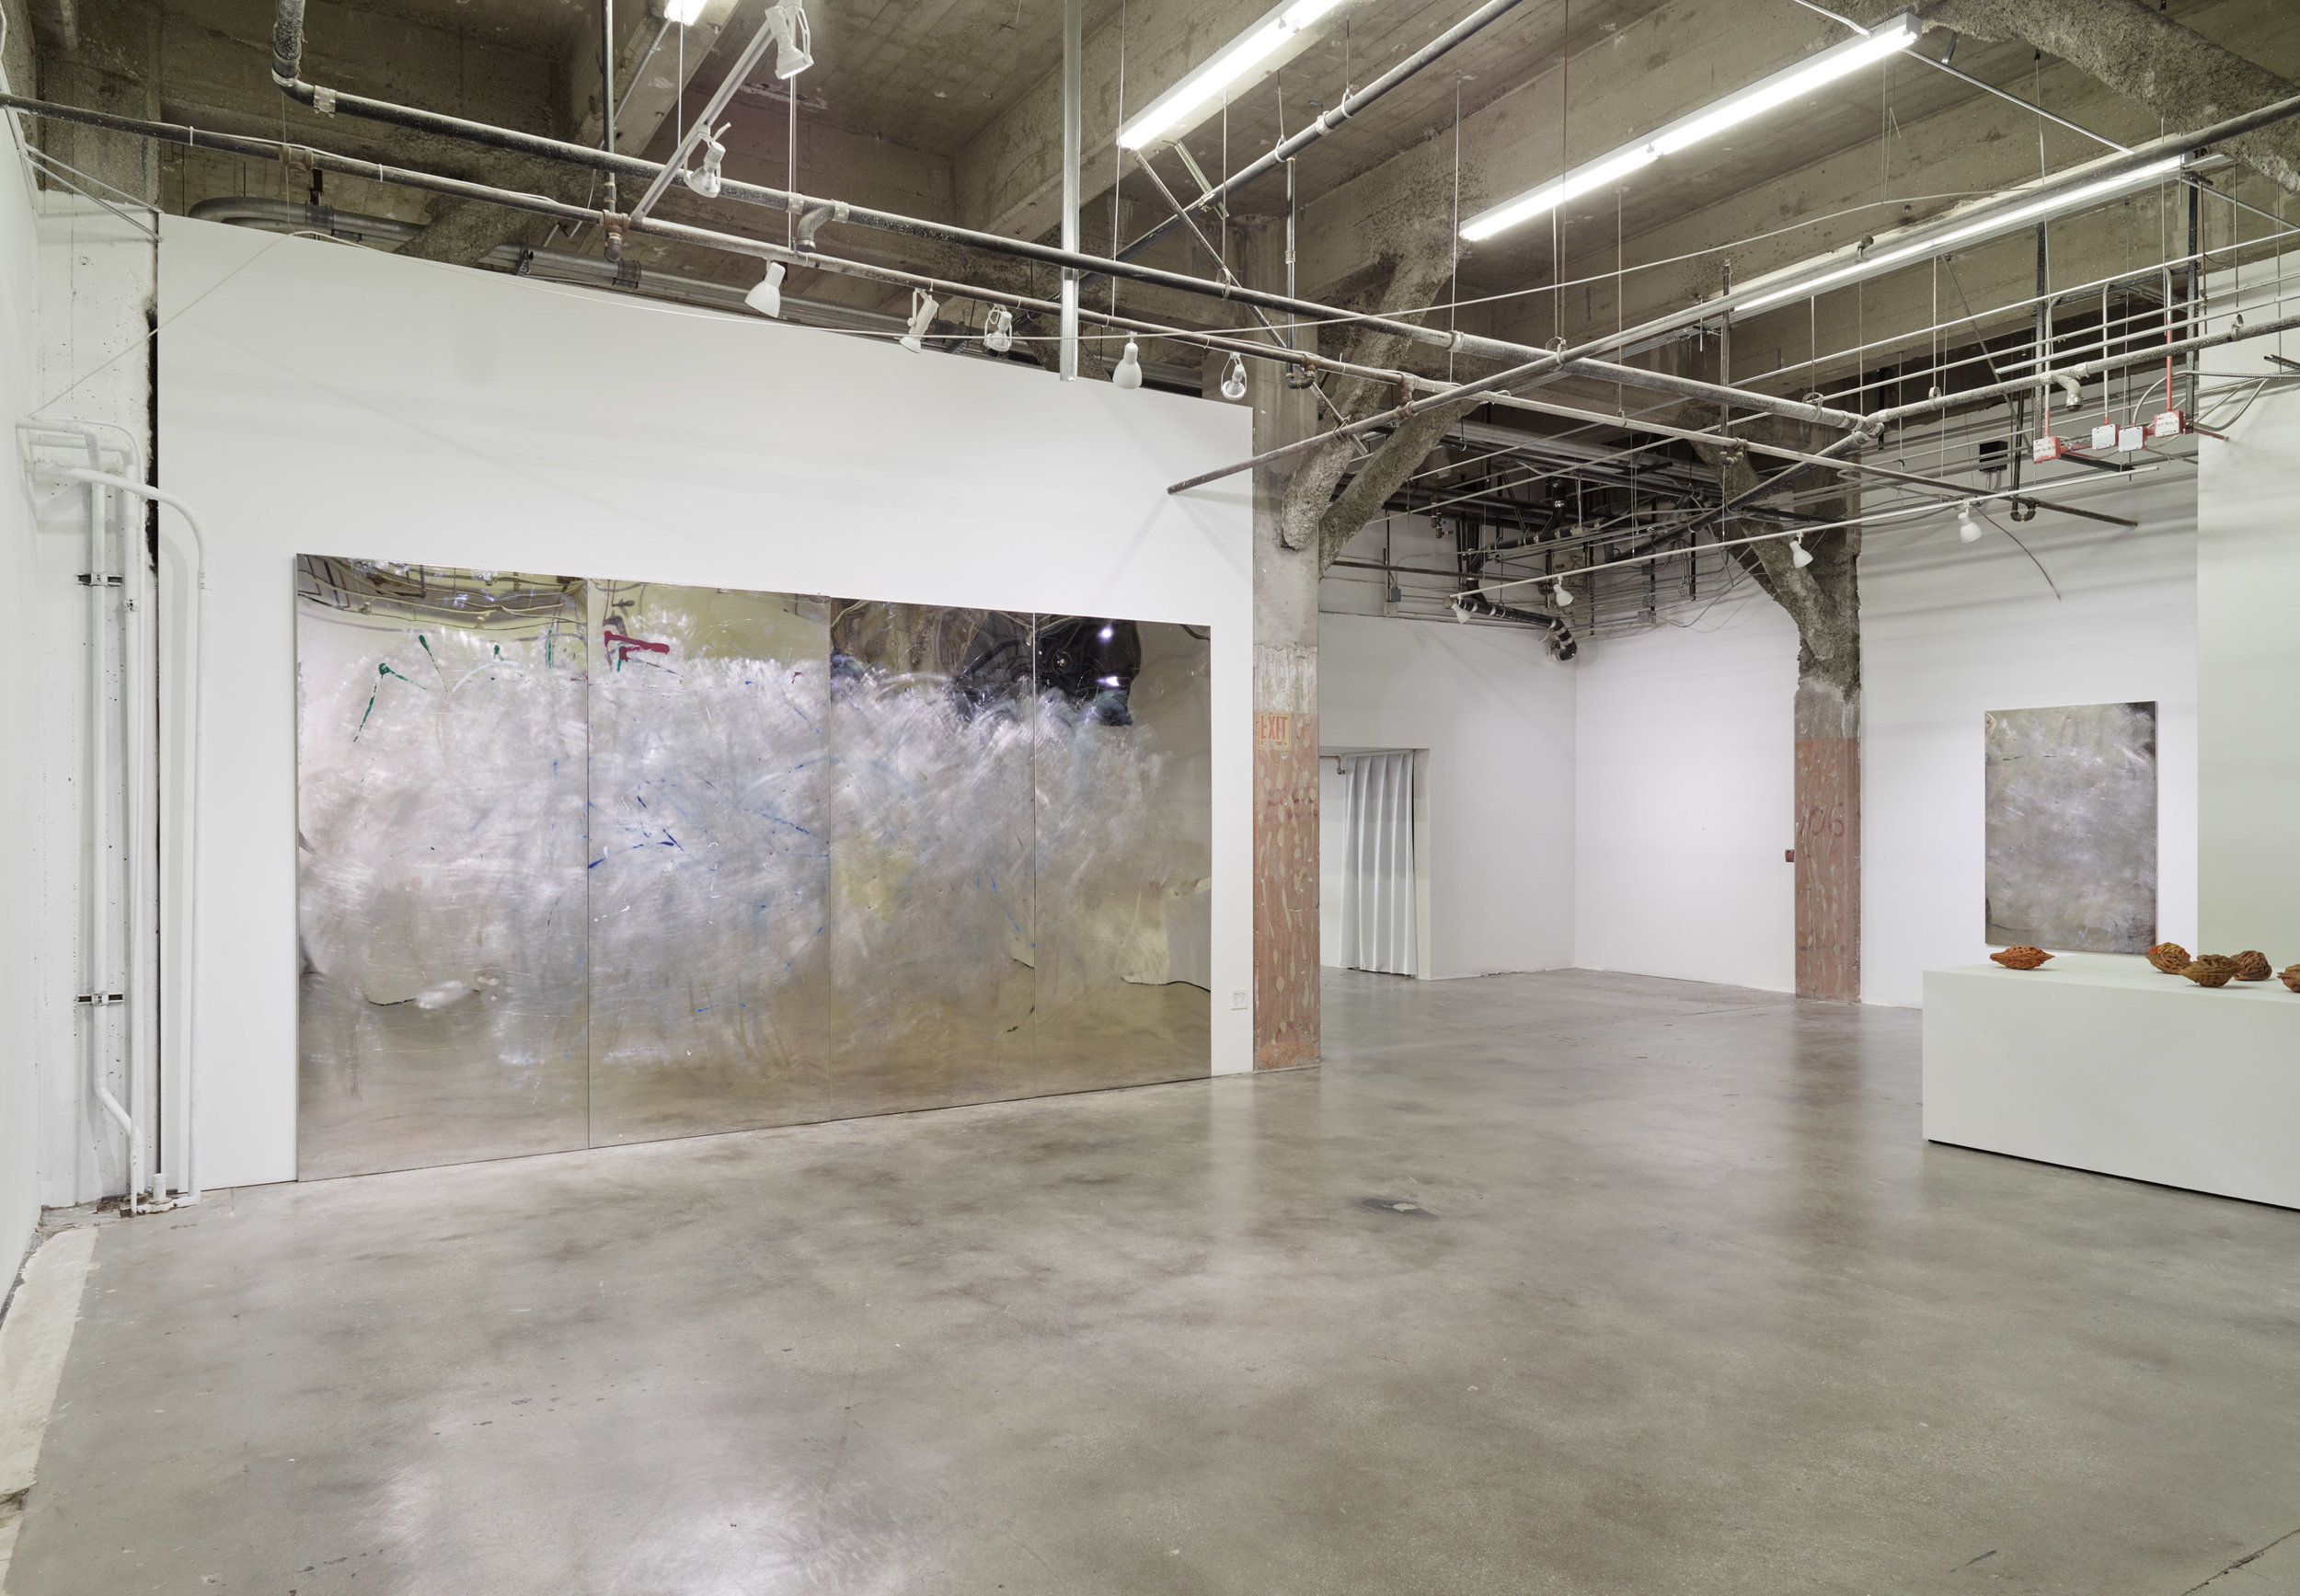 Installation view: Josh Callaghan, LIFEFORCE, Harmony Murphy Gallery, Los Angeles